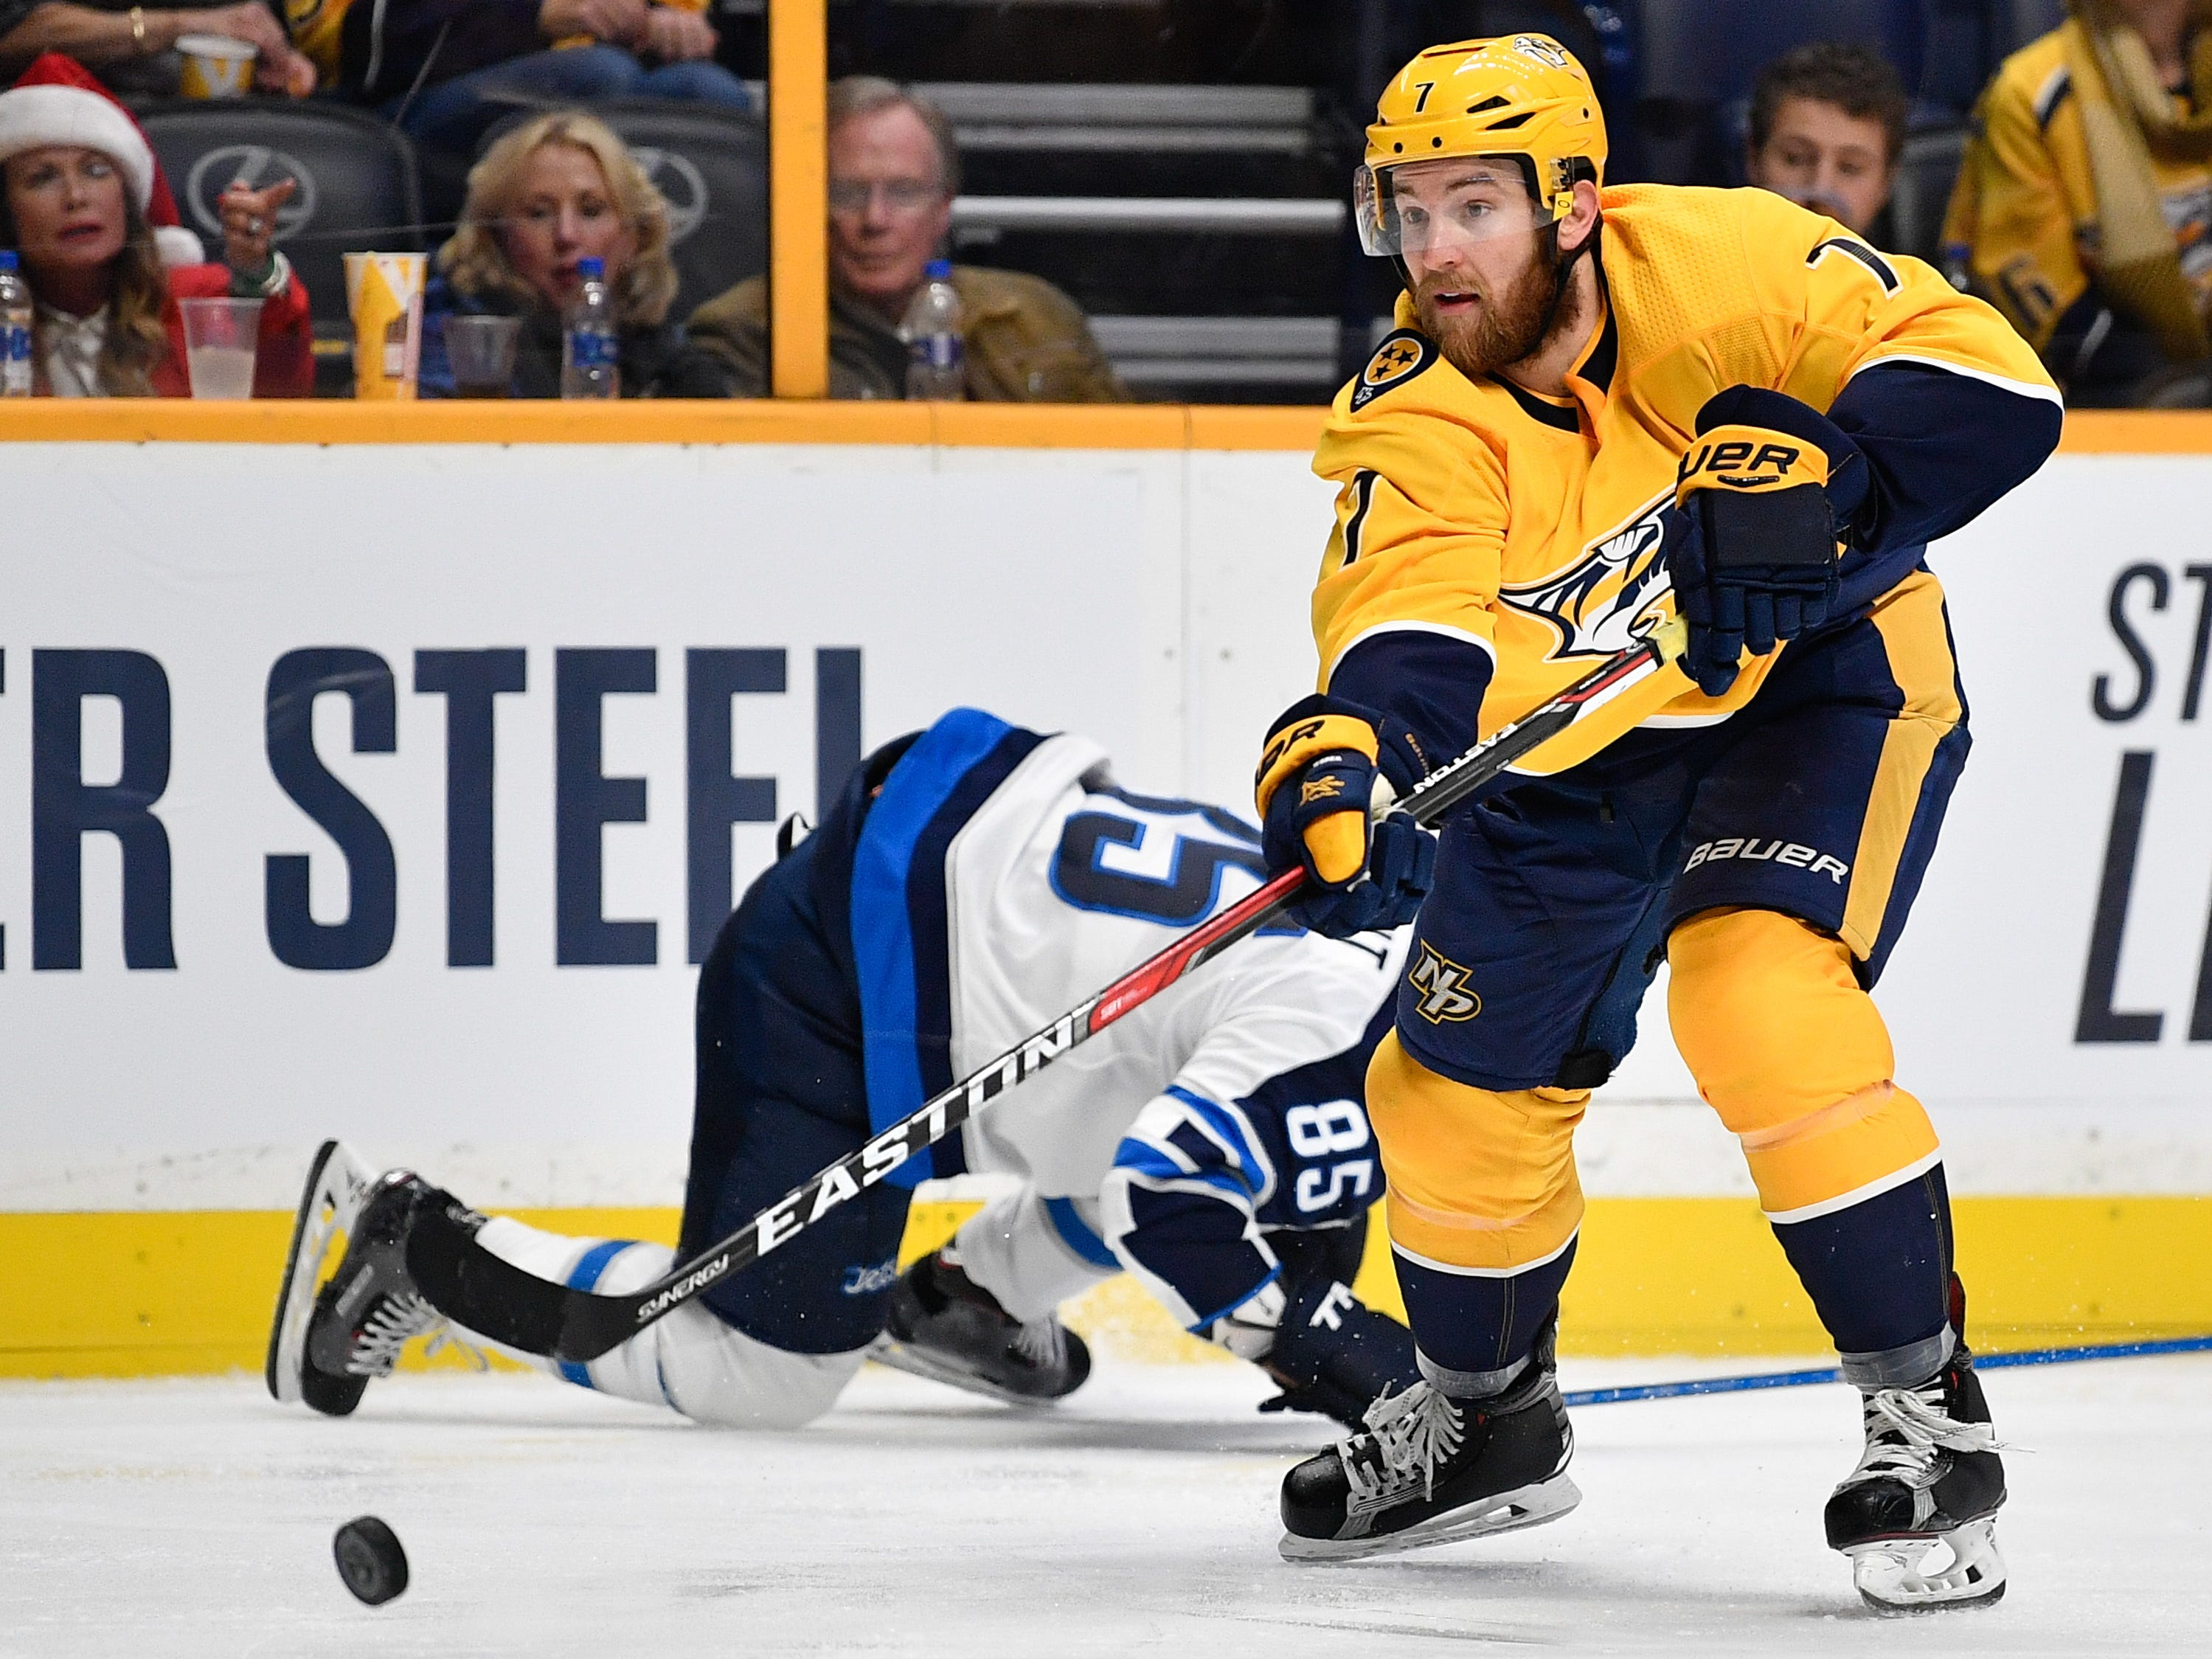 #7, Yannick Weber, Defenseman - Nashville Predators defenseman Yannick Weber (7) passes past Winnipeg Jets center Mathieu Perreault (85) during the third period at Bridgestone Arena in Nashville, Tenn., Tuesday, Dec. 19, 2017.